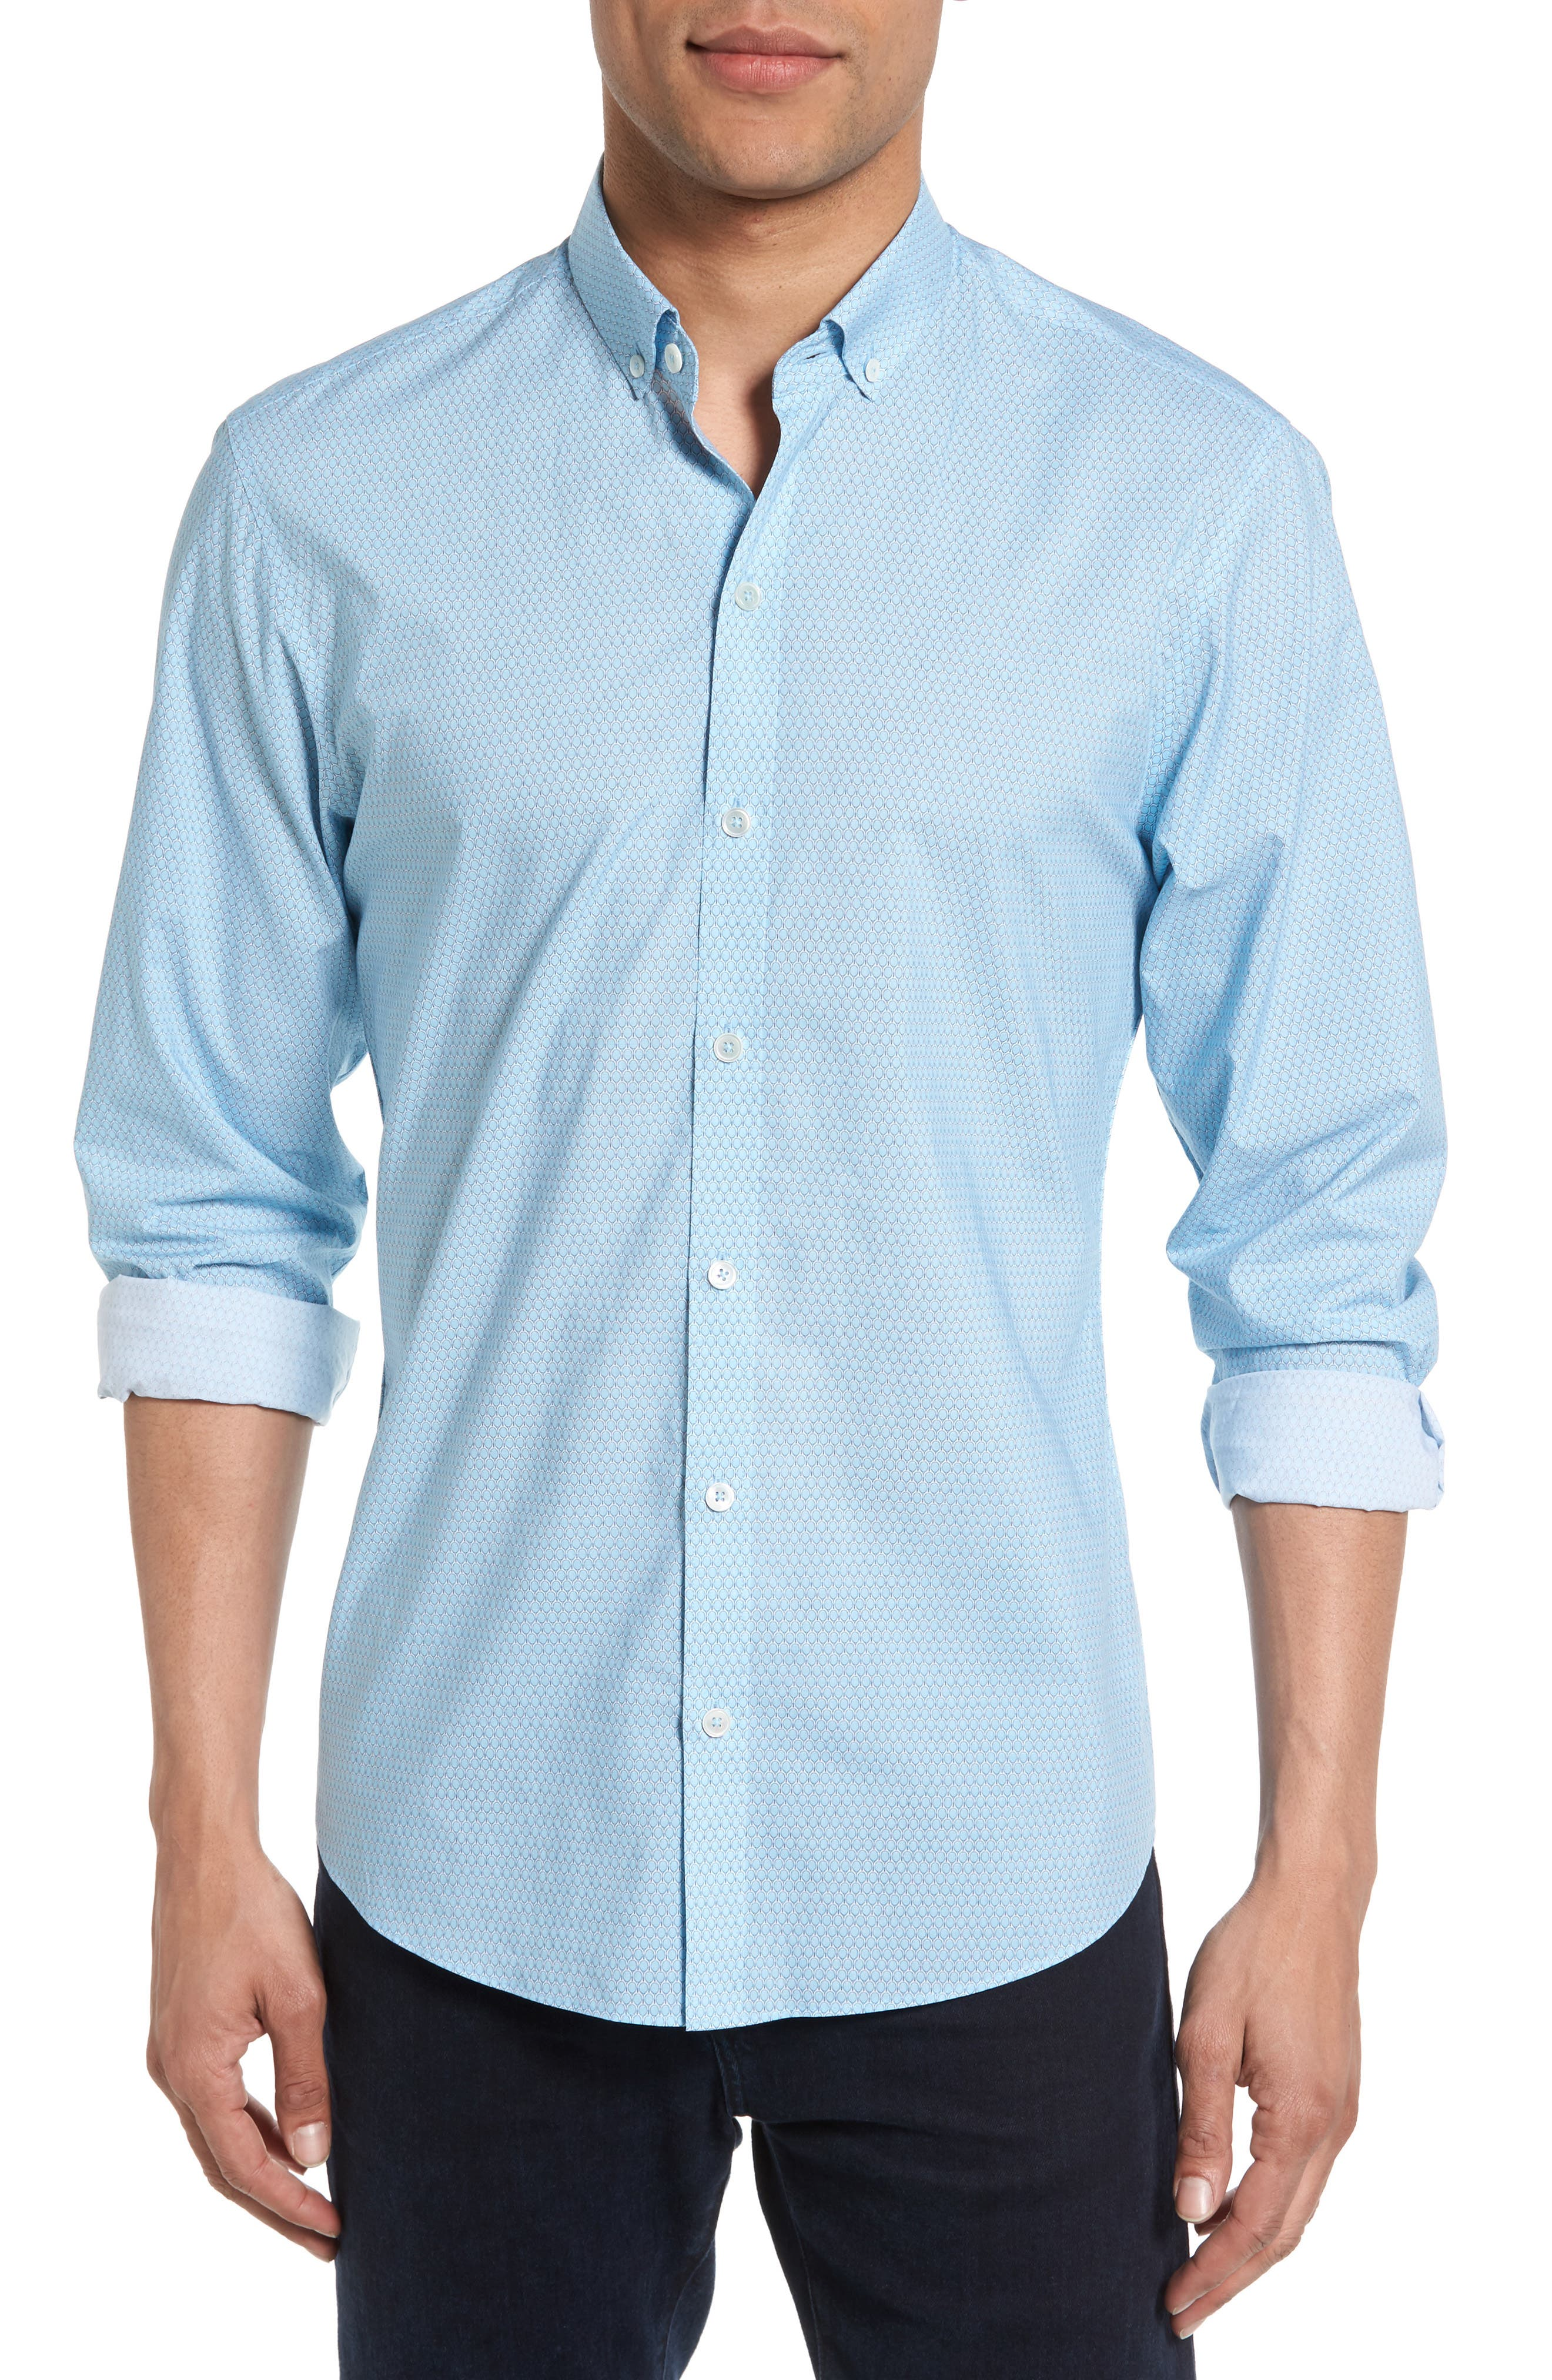 Main Image - Zachary Prell Dakotah Trim Fit Print Sport Shirt